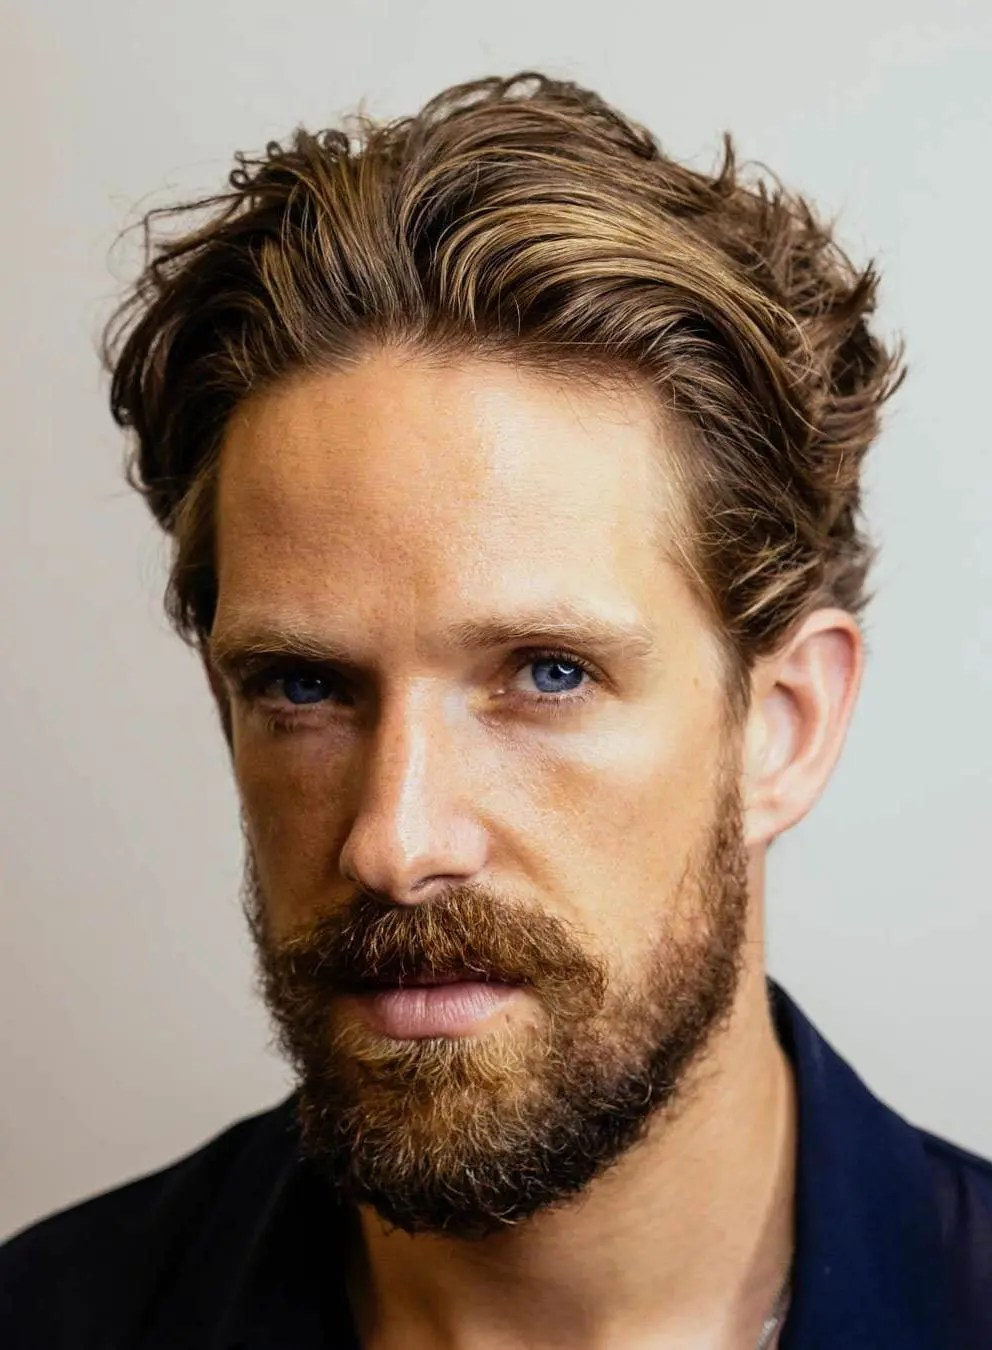 HAIRCUTS FOR MEN WITH CURLY HAIR slick back